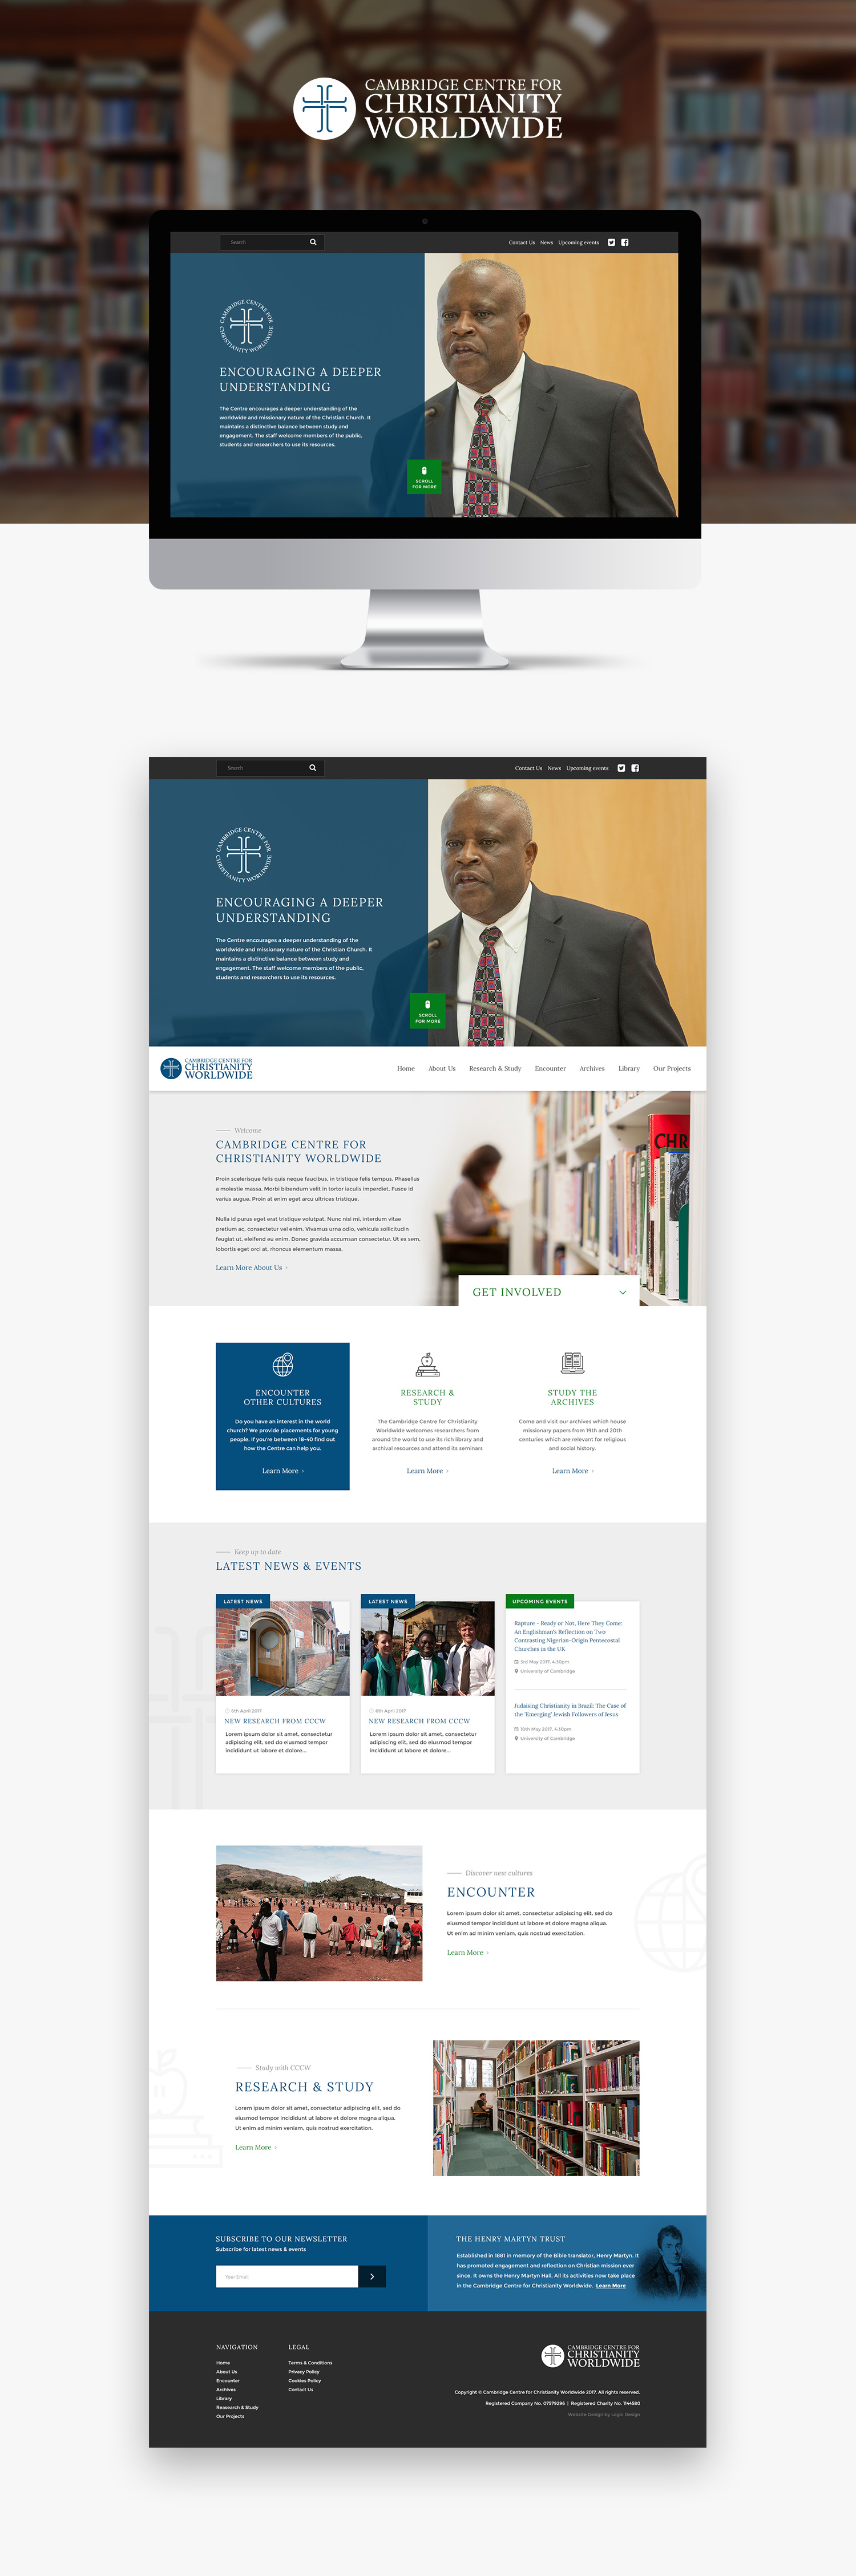 To find out more about our website design services here at Logic Design click on the image or visit us at www.logicdesign.co.uk